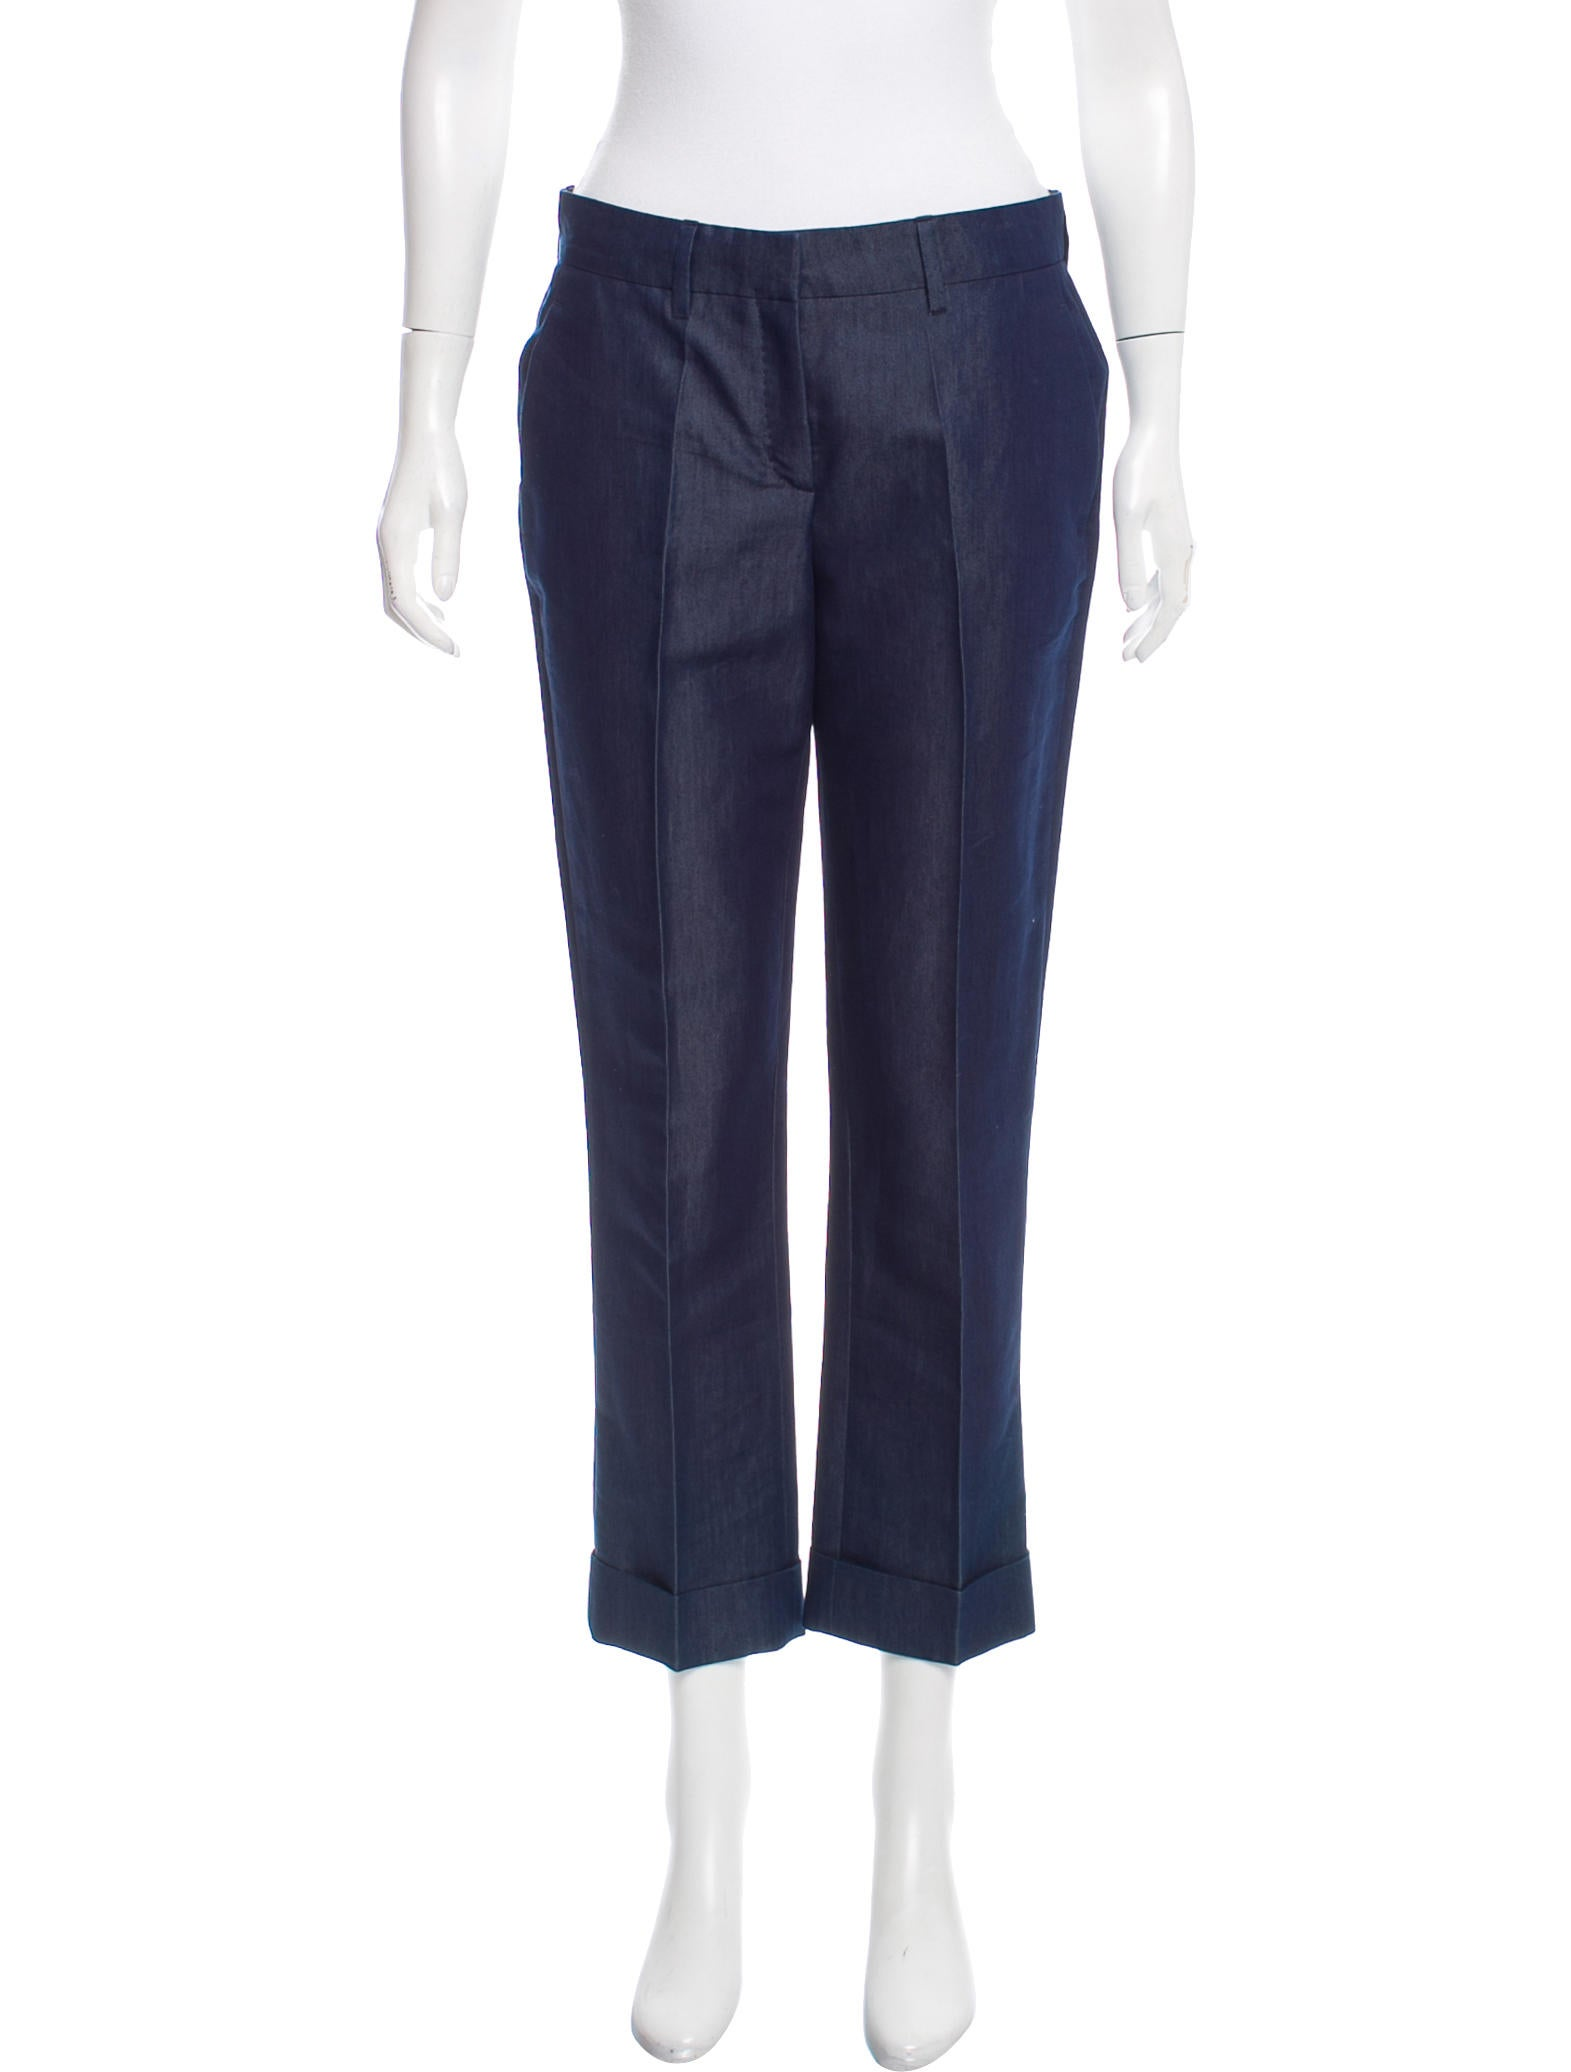 Reed krakoff chambray mid rise pants clothing ree27594 for Chambray jeans